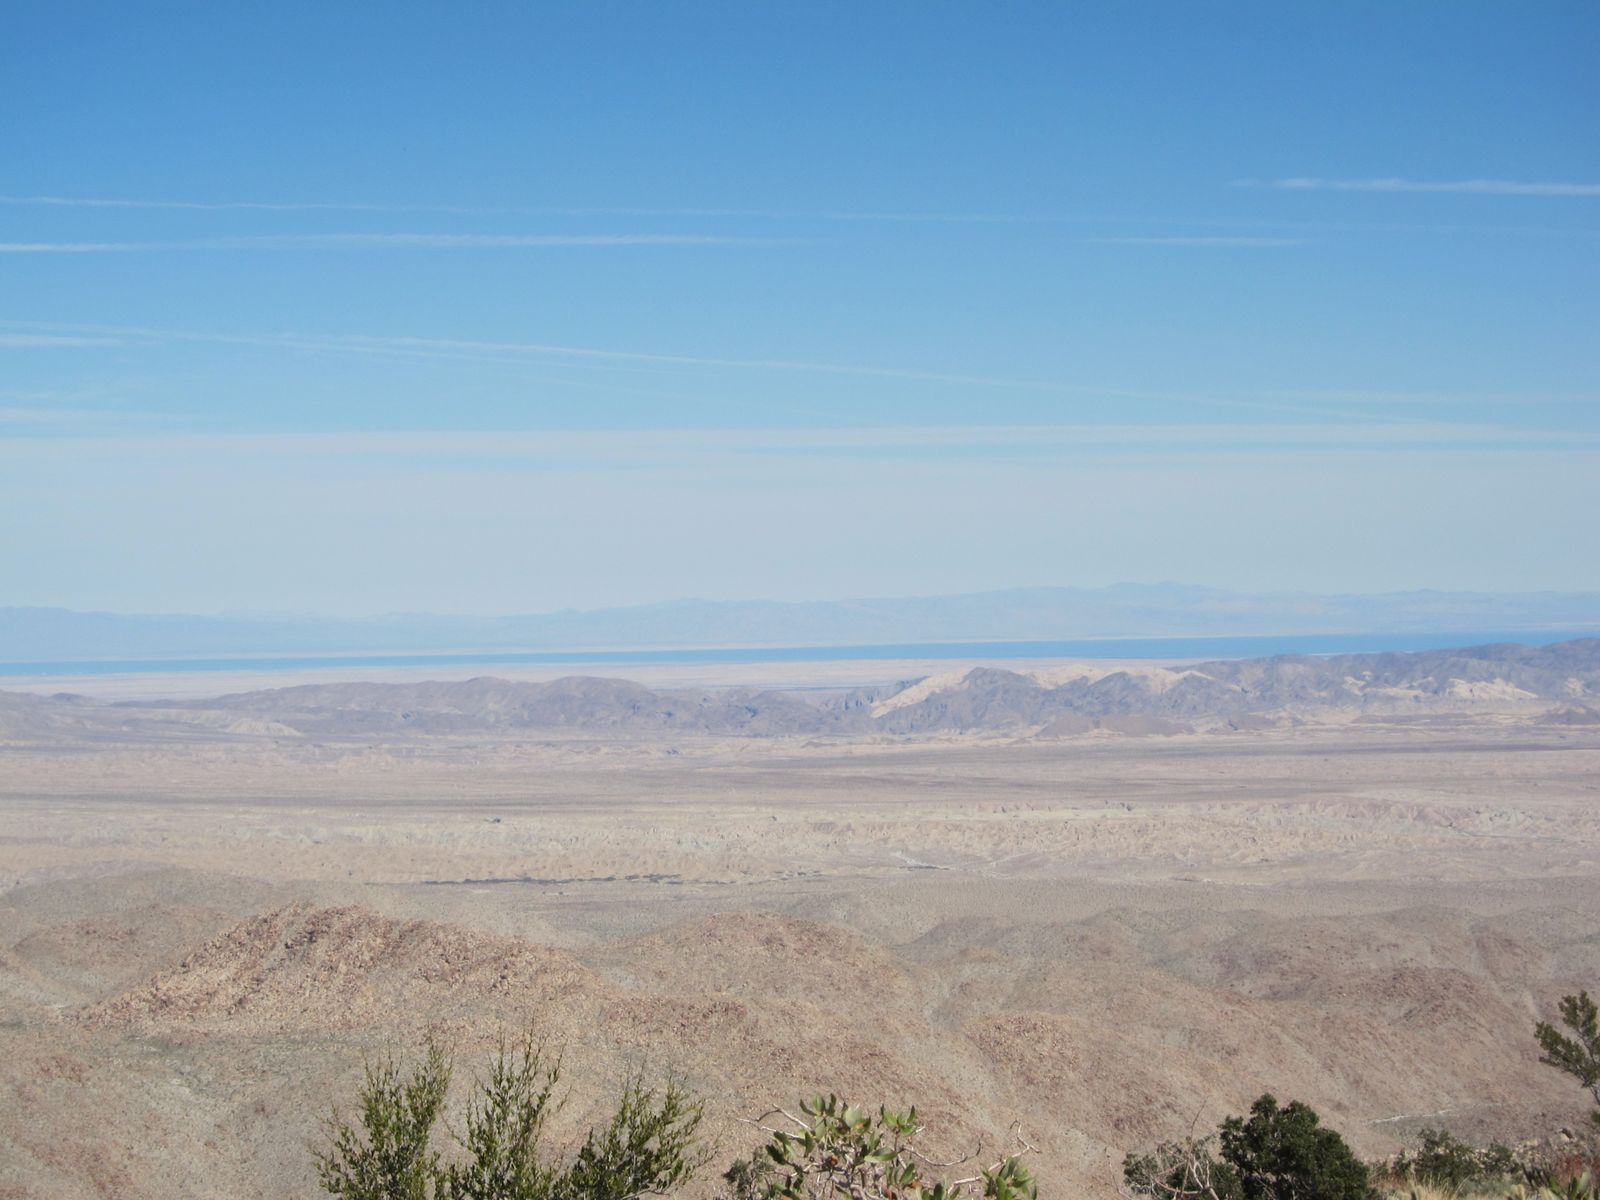 View of the Salton Sea from high up on the ridge above Indian Valley